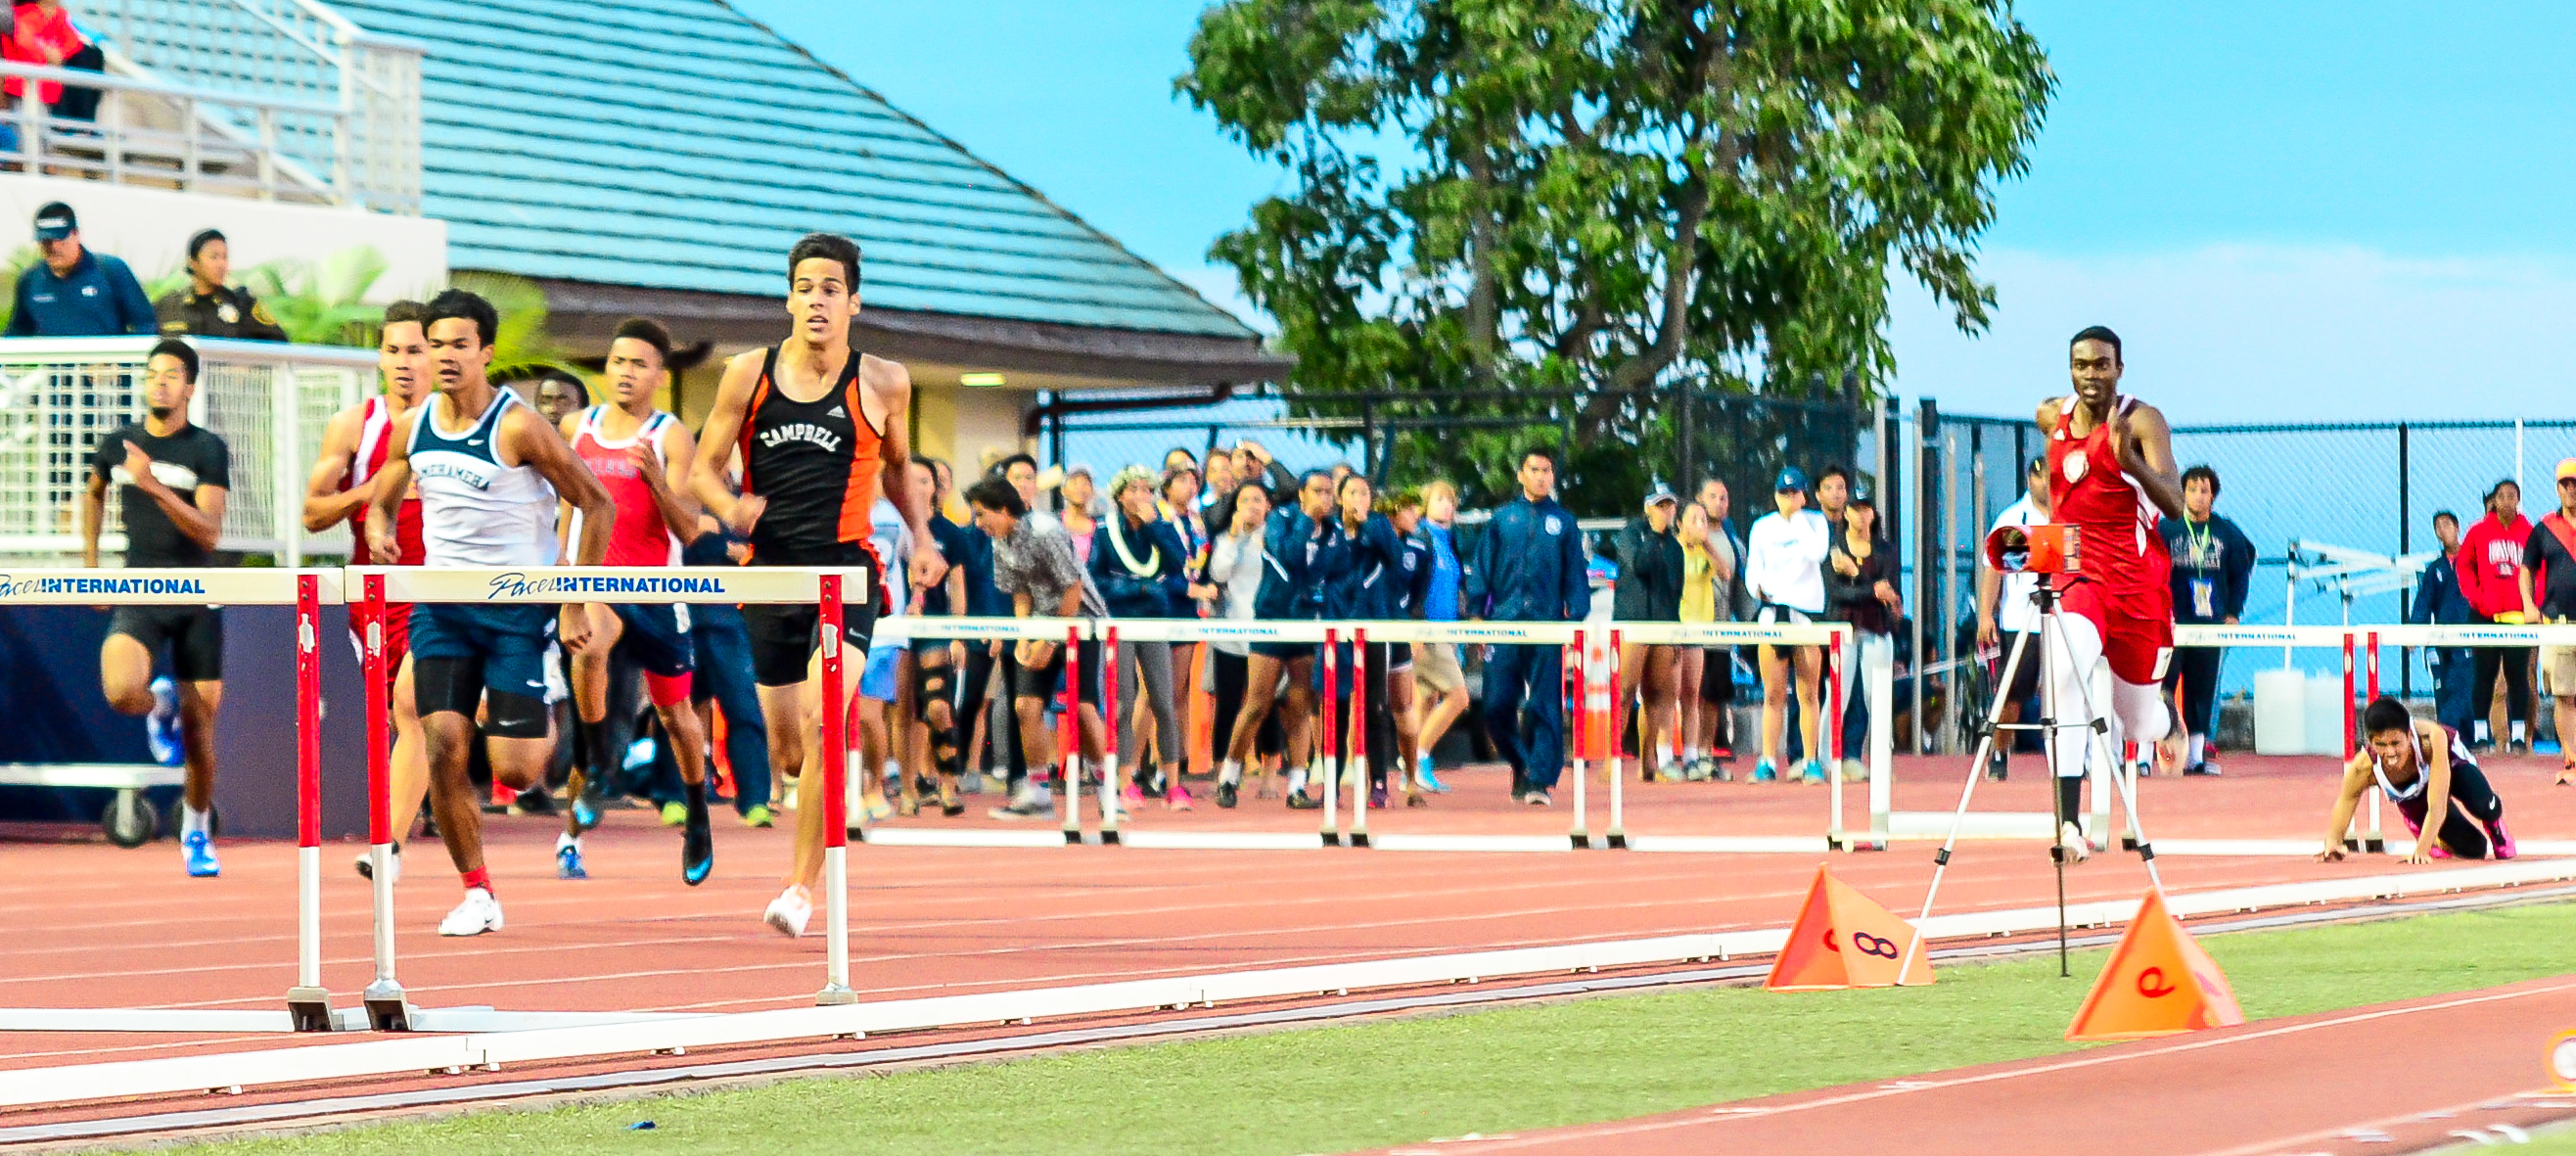 Baldwins Keirnan Mateo (far right) fell in the 300 hurdles, but Lahainaluna's Kamal Golaube finished fourth in 40.05 seconds. Photo by Rodney S. Yap.